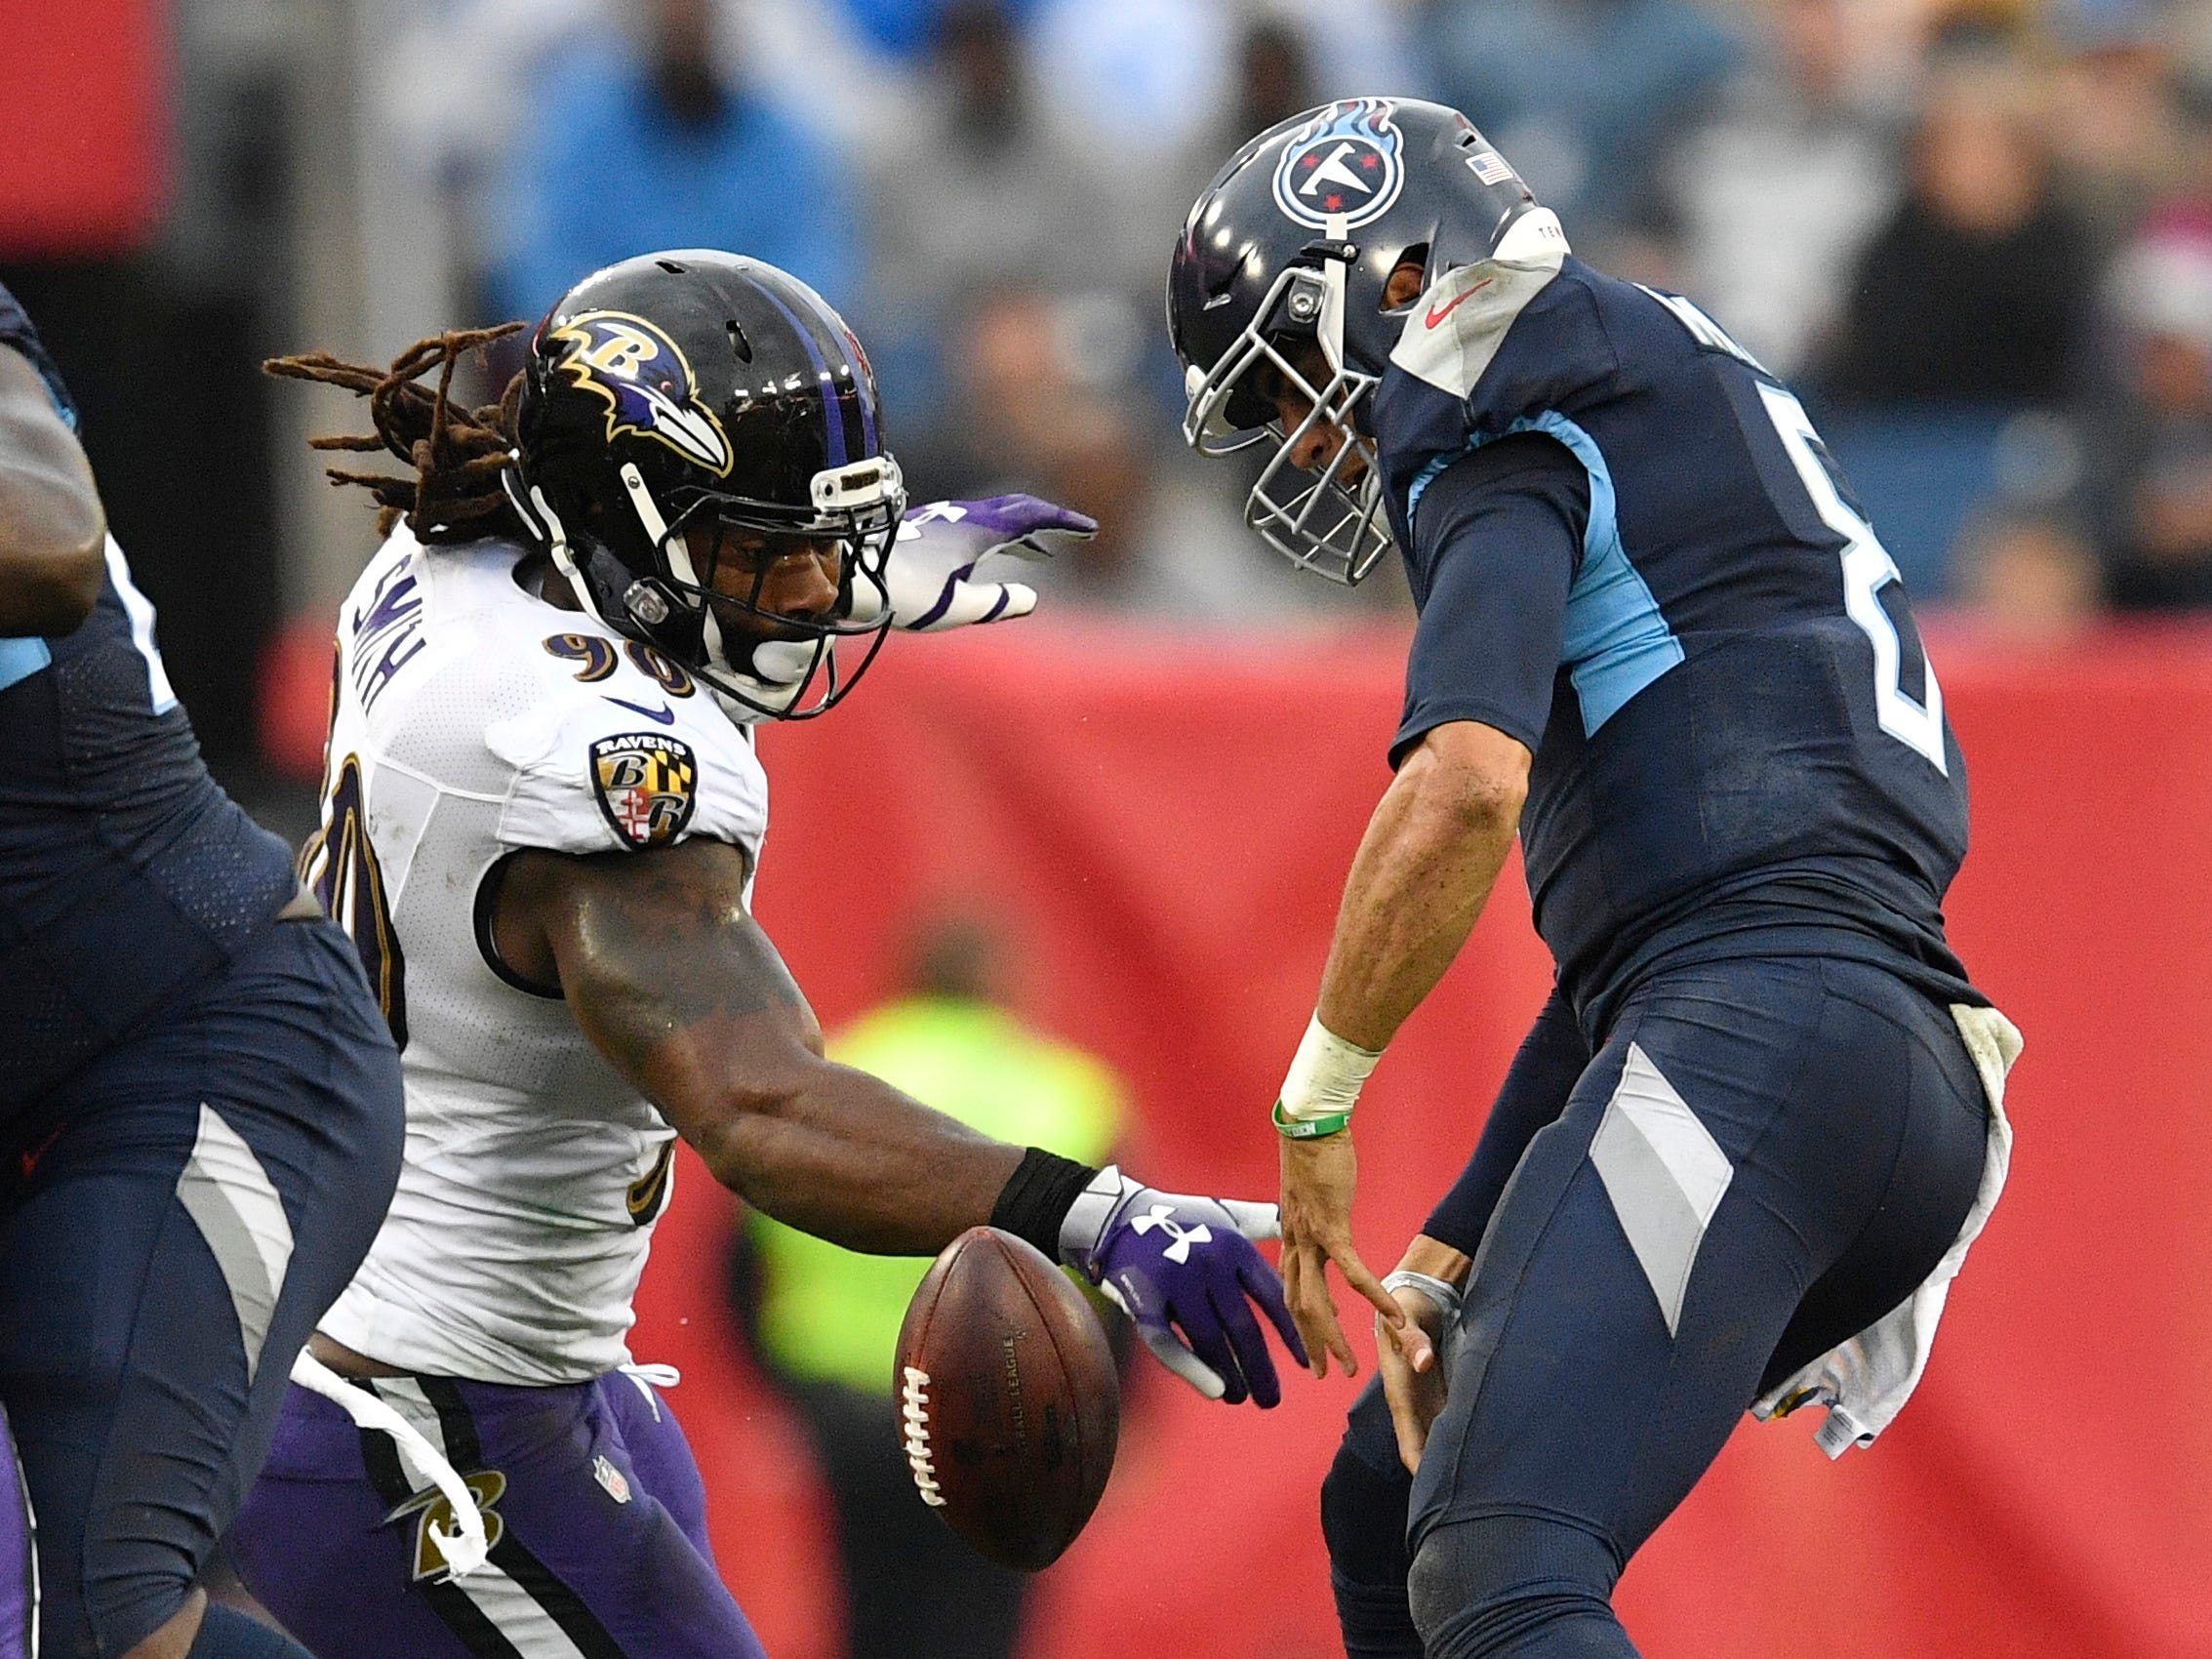 Ravens linebacker Za'Darius Smith (90) strips the ball from Titans quarterback Marcus Mariota (8) who recovered his own fumble in the second quarter at Nissan Stadium Sunday, Oct. 14, 2018, in Nashville, Tenn.